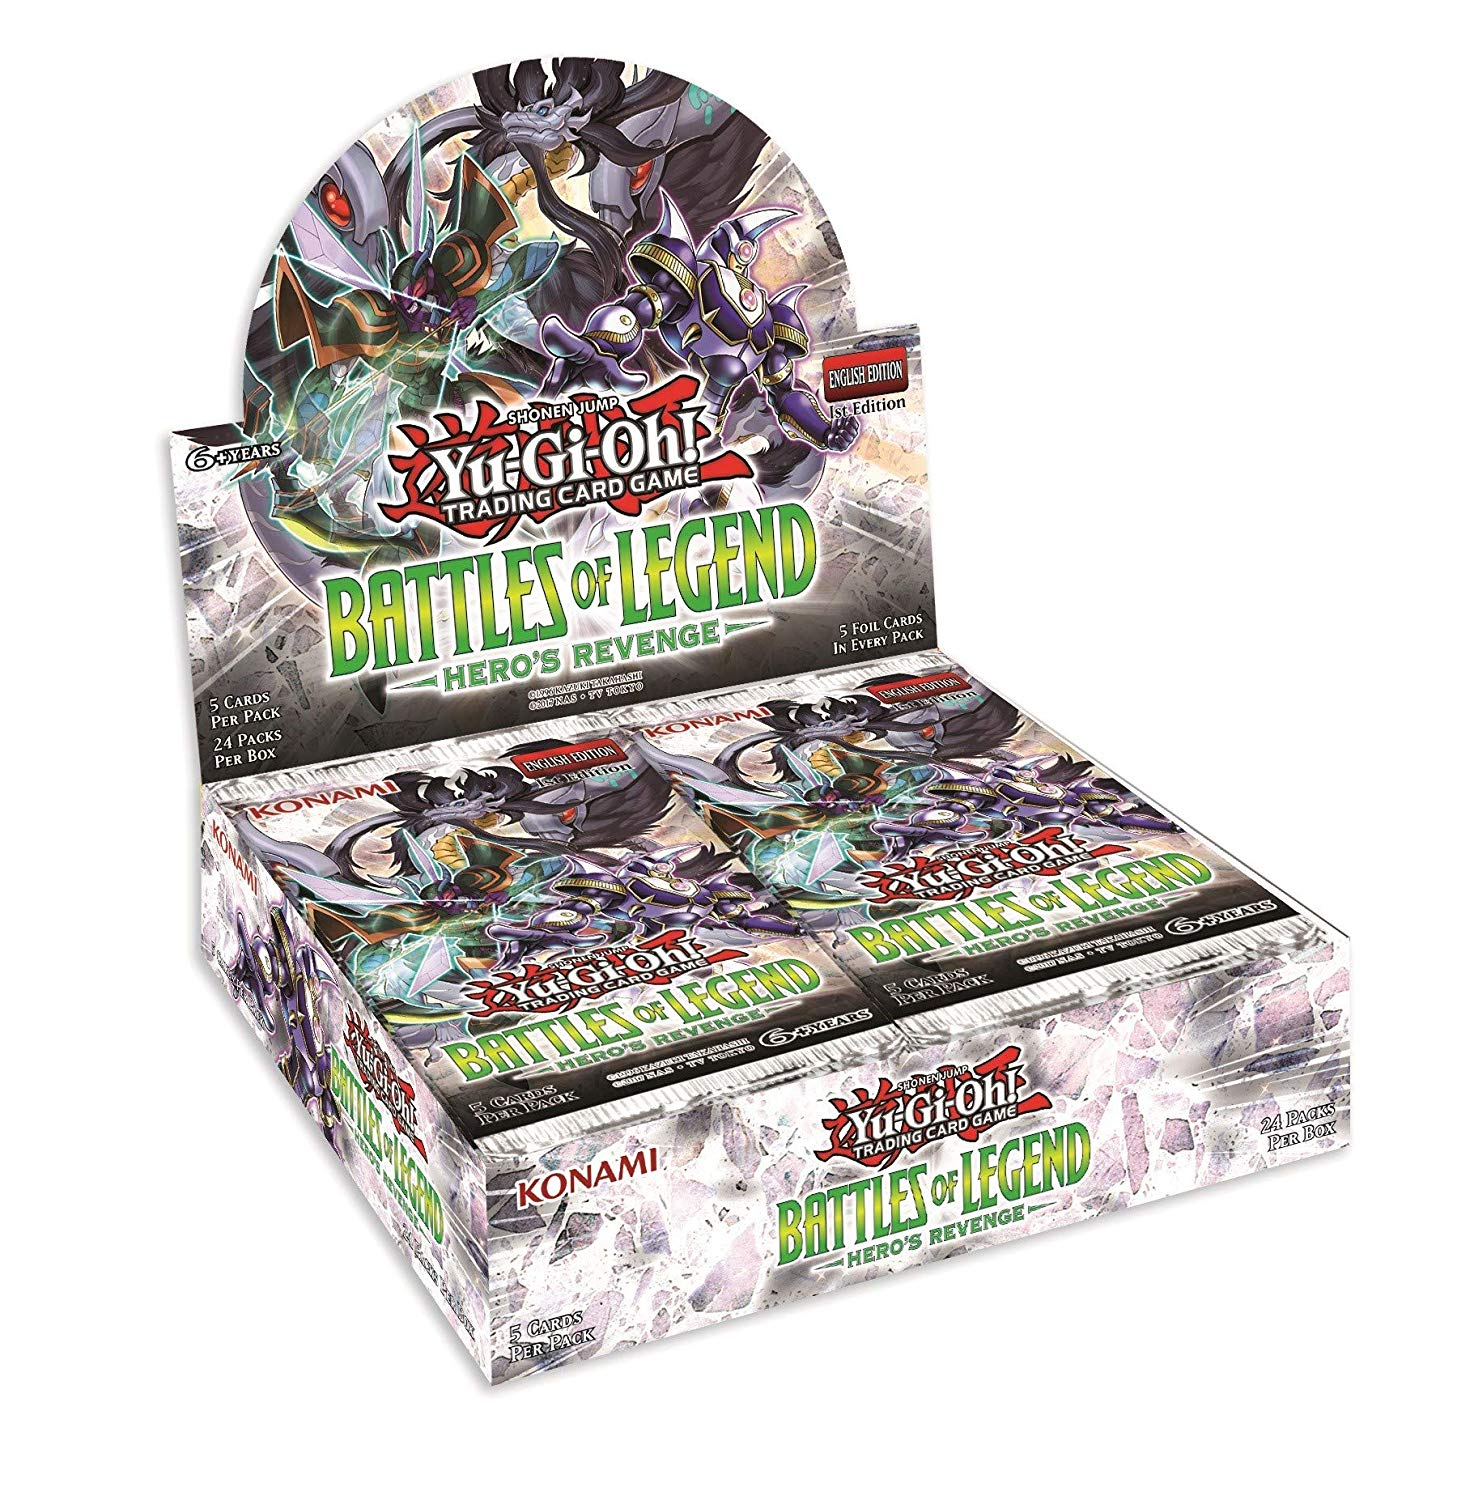 Battles of Legend: Heros Revenge Booster Box